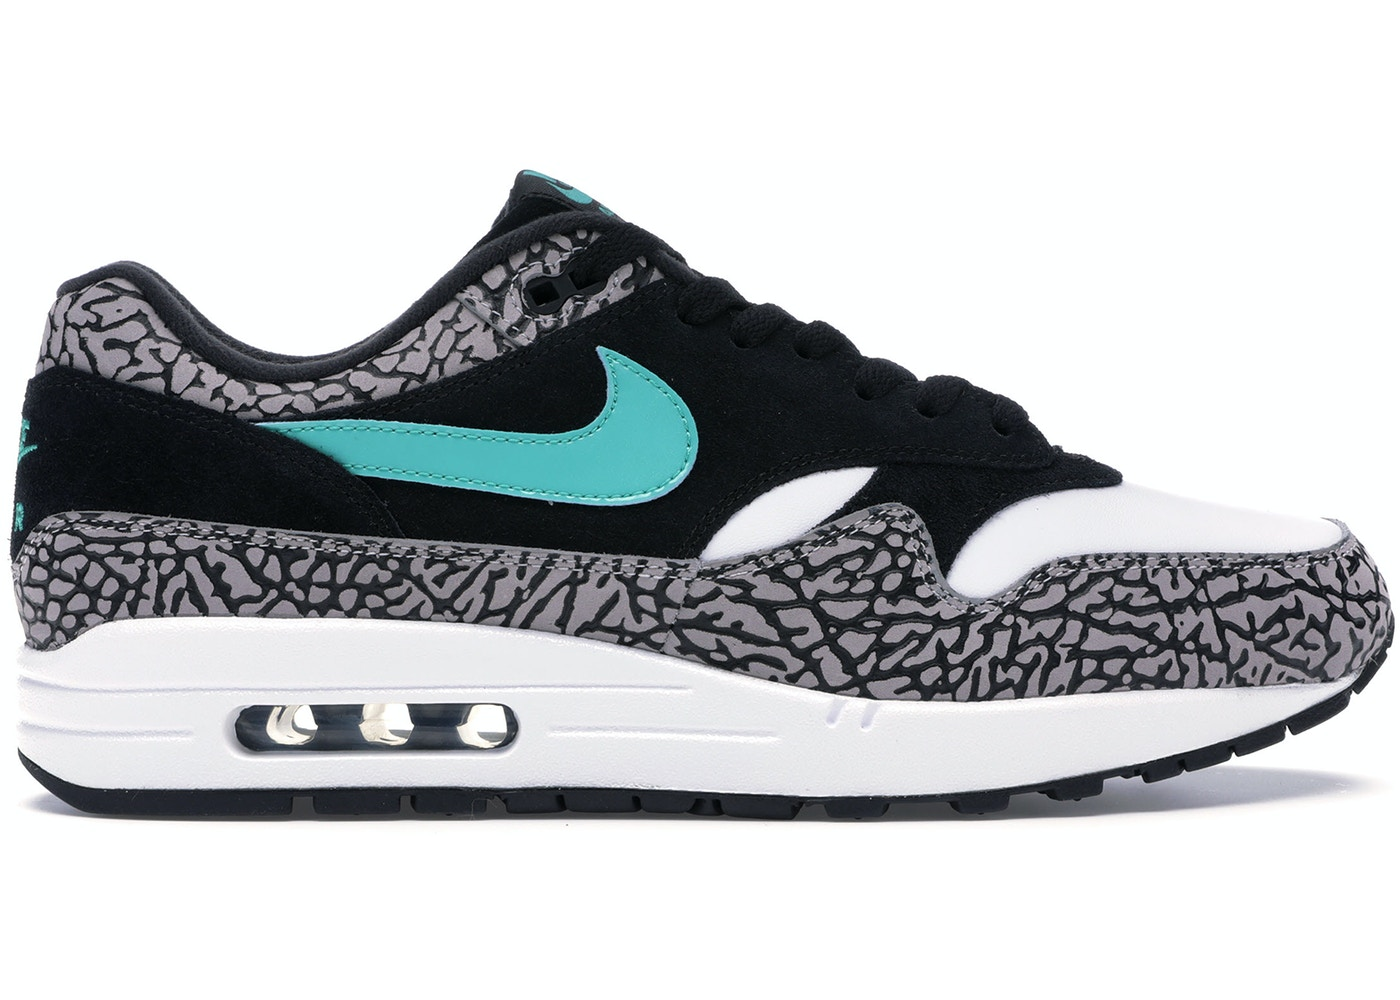 on sale 20481 bb8b0 Air Max 1 Atmos Elephant (2017) - 908366-001